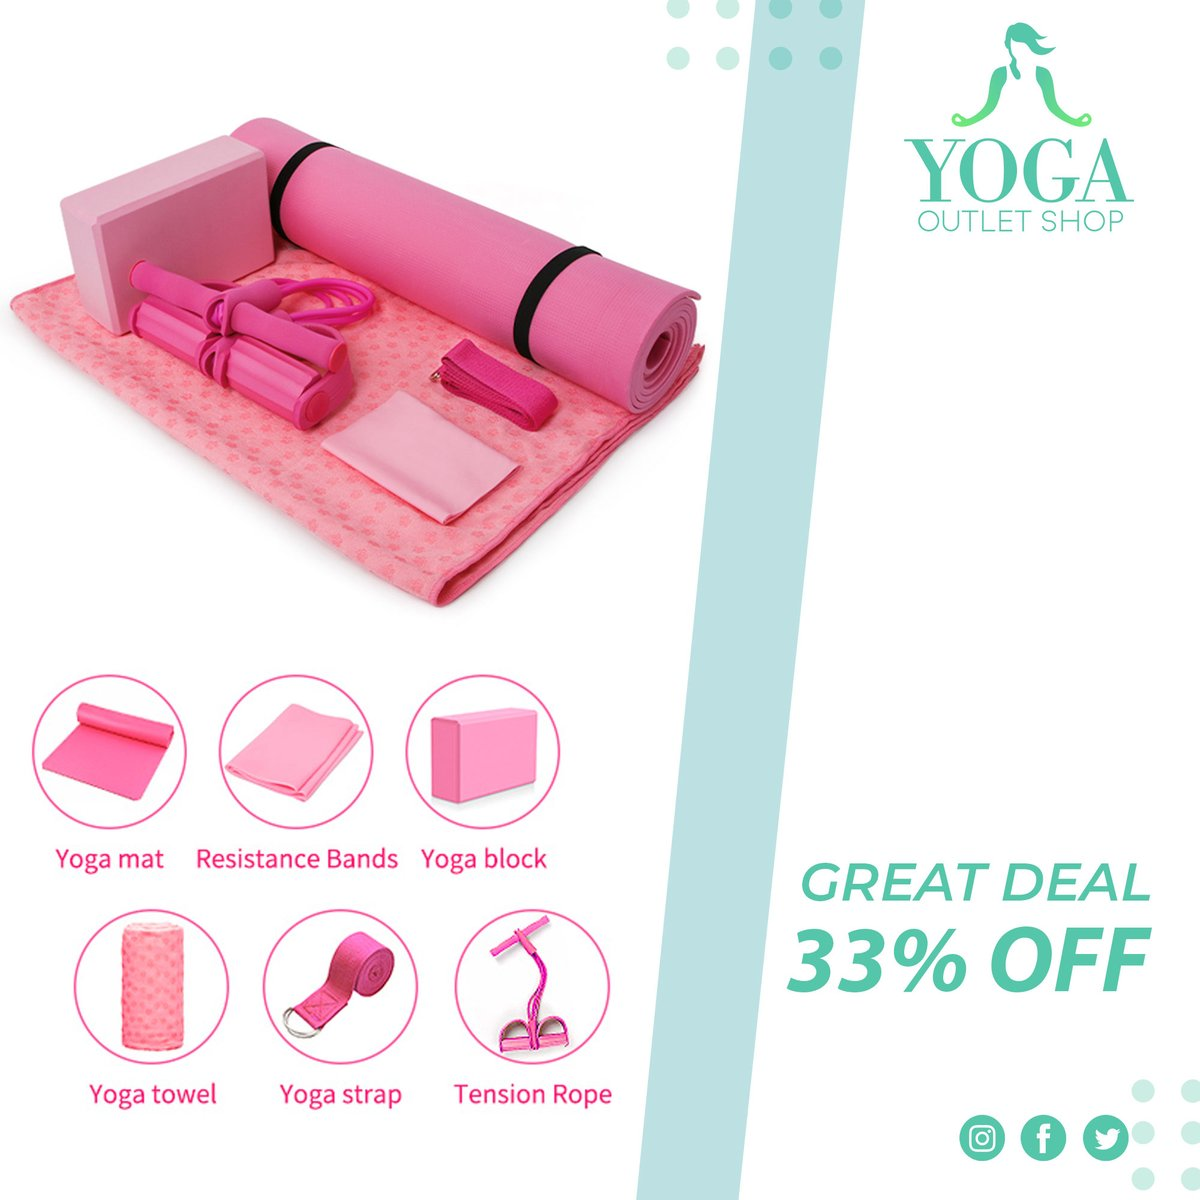 All You Need 7 Pcs Yoga Set 🧘‍♀️ (33% OFF TODAY) ✅ Yoga Ball ✅Yoga Mat ✅Resistance Band ✅Yoga Strap ✅Tension Rope ✅Yoga Towel ✅Block . 🙏 🙏 . . .#yogawear #yoga #activewear #yogapants #gymwear #leggings #sportswear #fitnesswear #gym #yogalove #yogaset